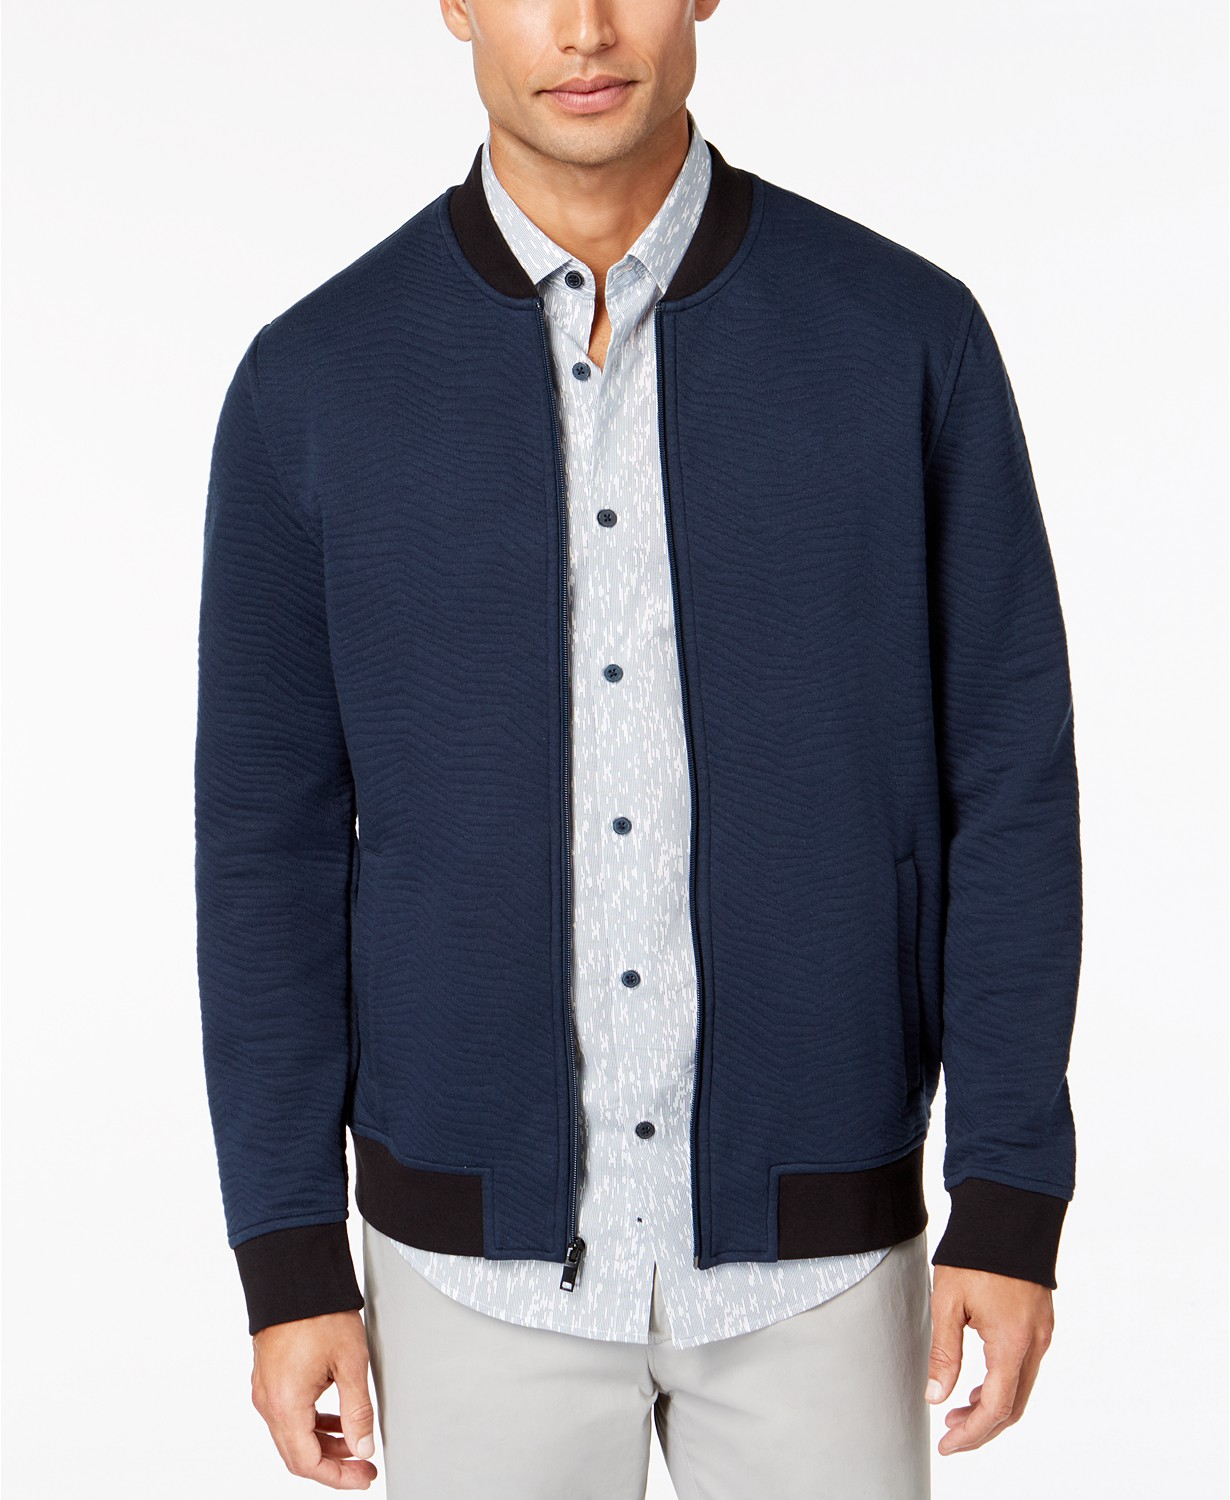 Alfani Men's Textured Bomber Jacket